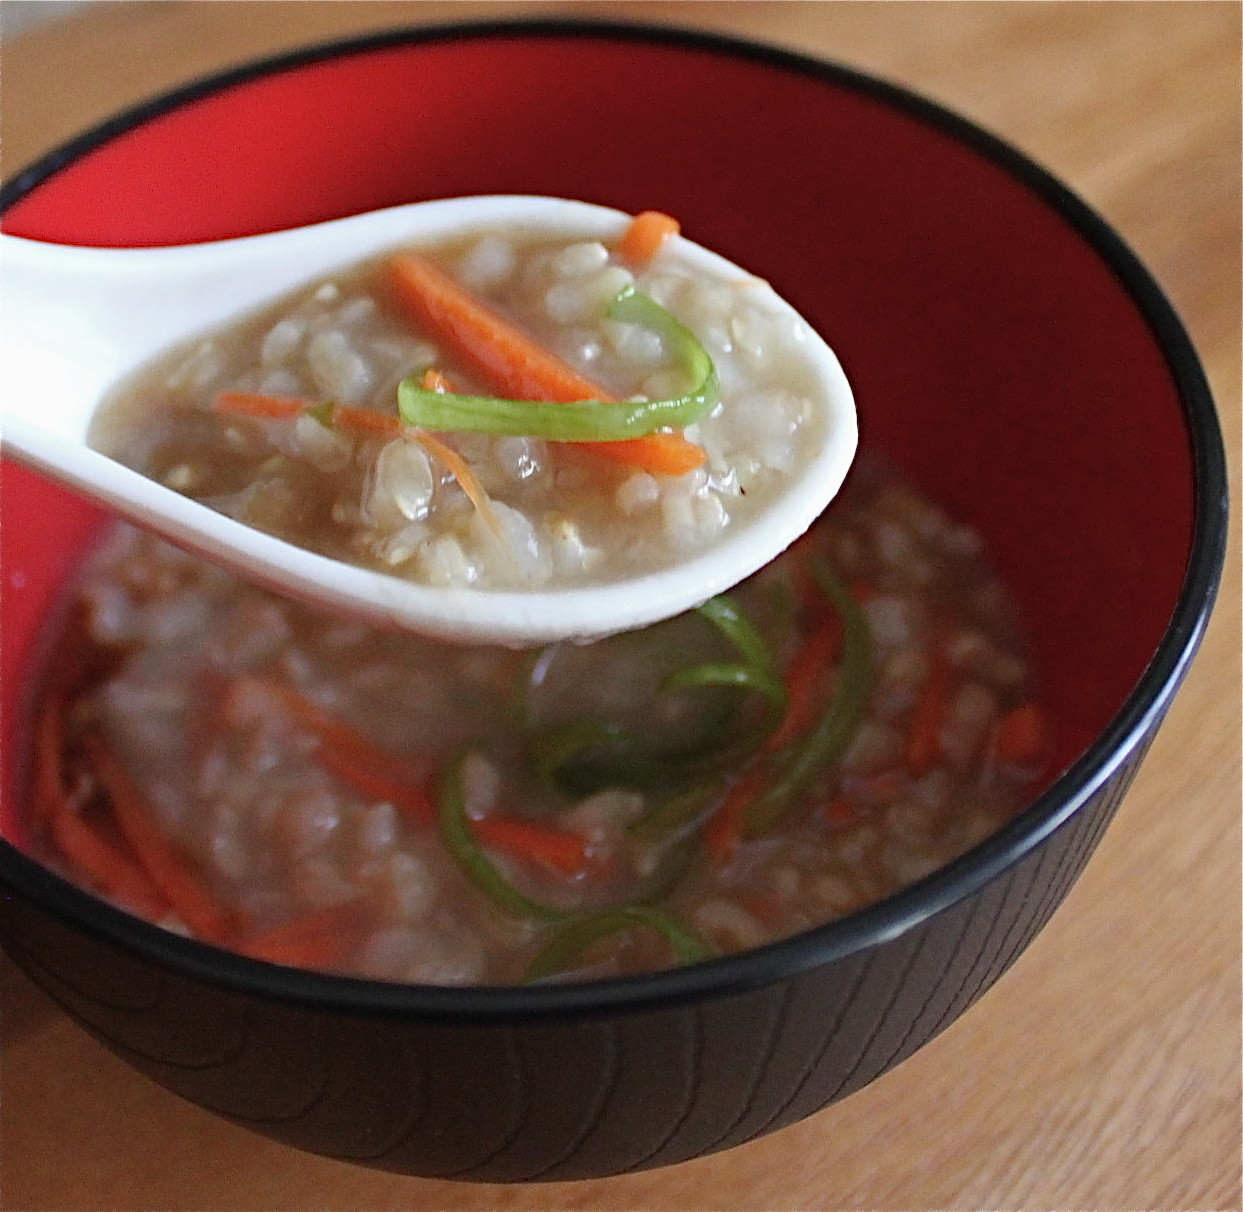 After Thanksgiving Turkey Recipes  The Day After Thanksgiving Turkey Congee Recipe